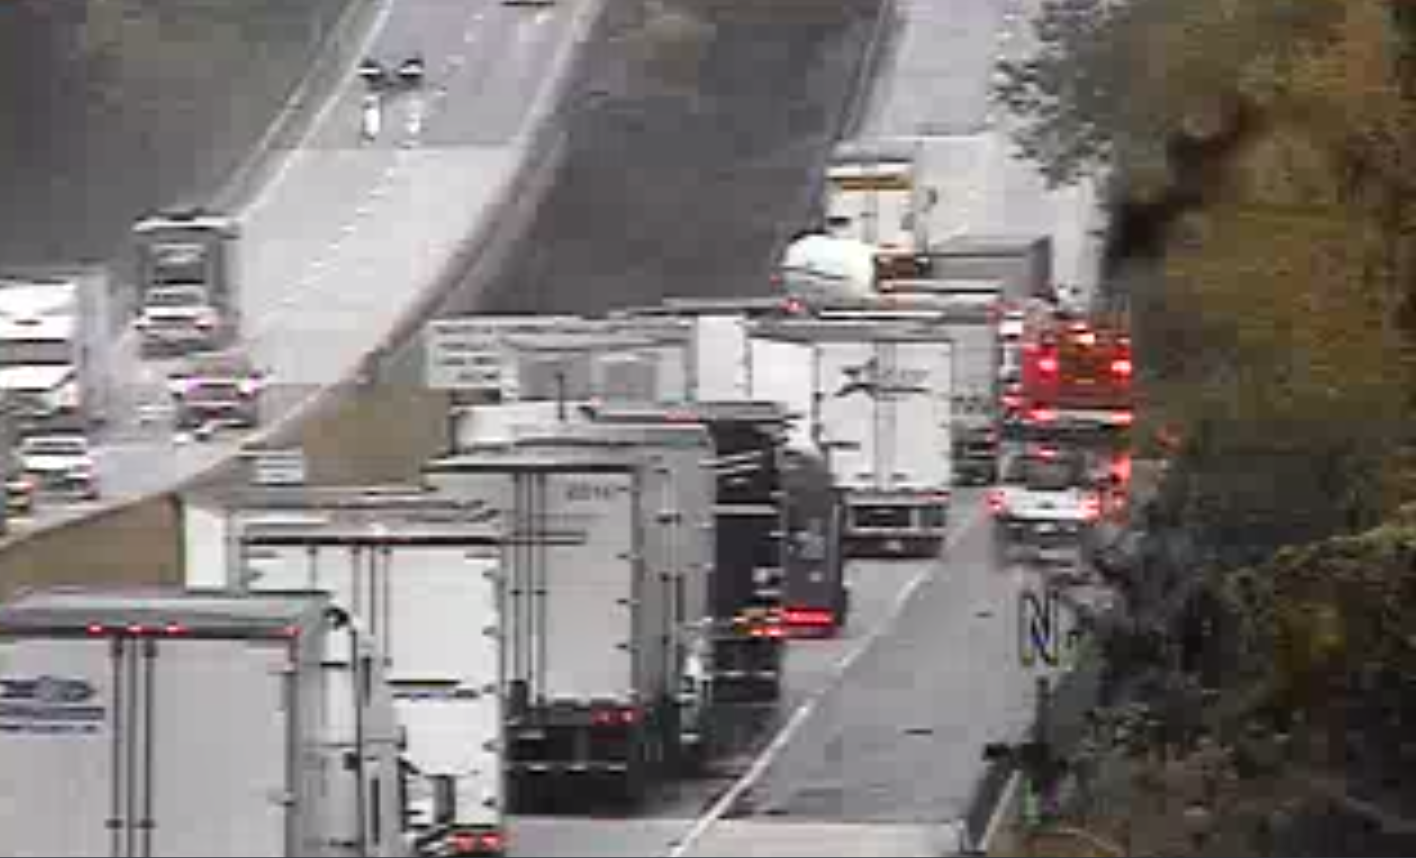 Motorists will find delays on I-81 due to an accident involving a tractor-trailer.